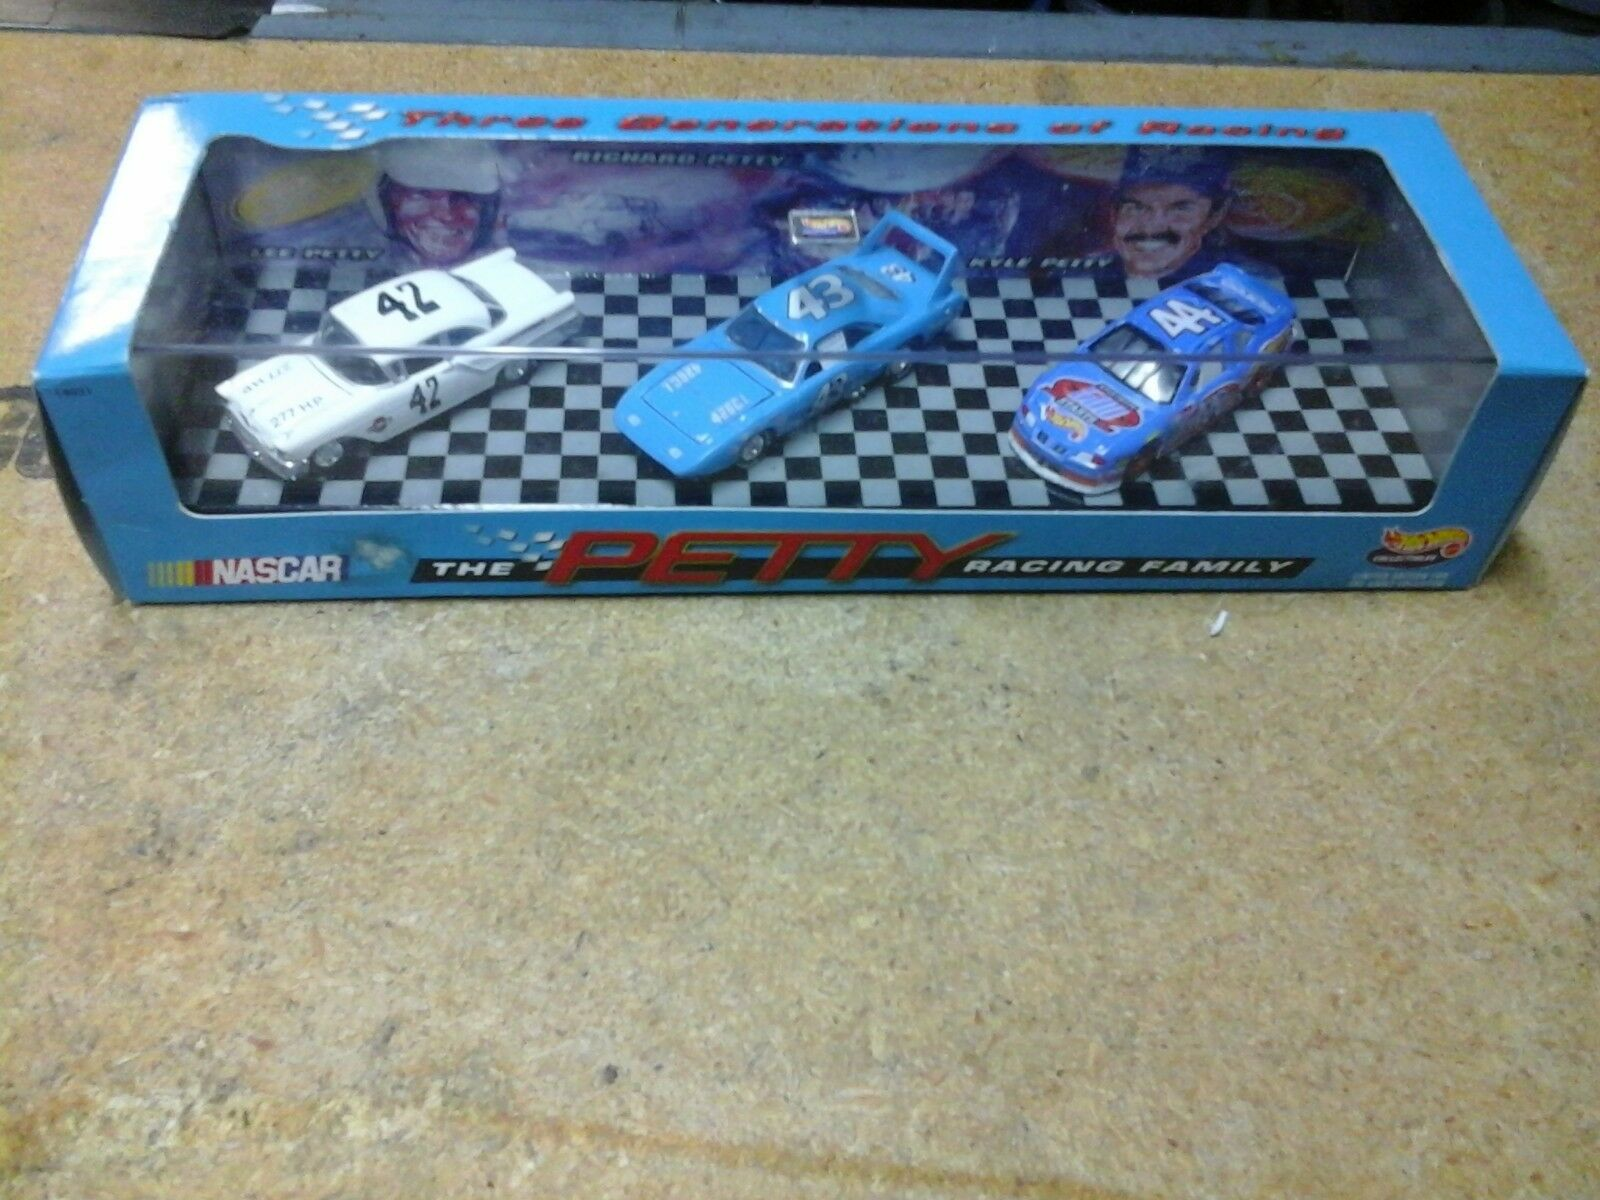 1997 HOTWHEELS  THE PETTY RACING FAMILY  3 GENERATIONS SEALED NEW